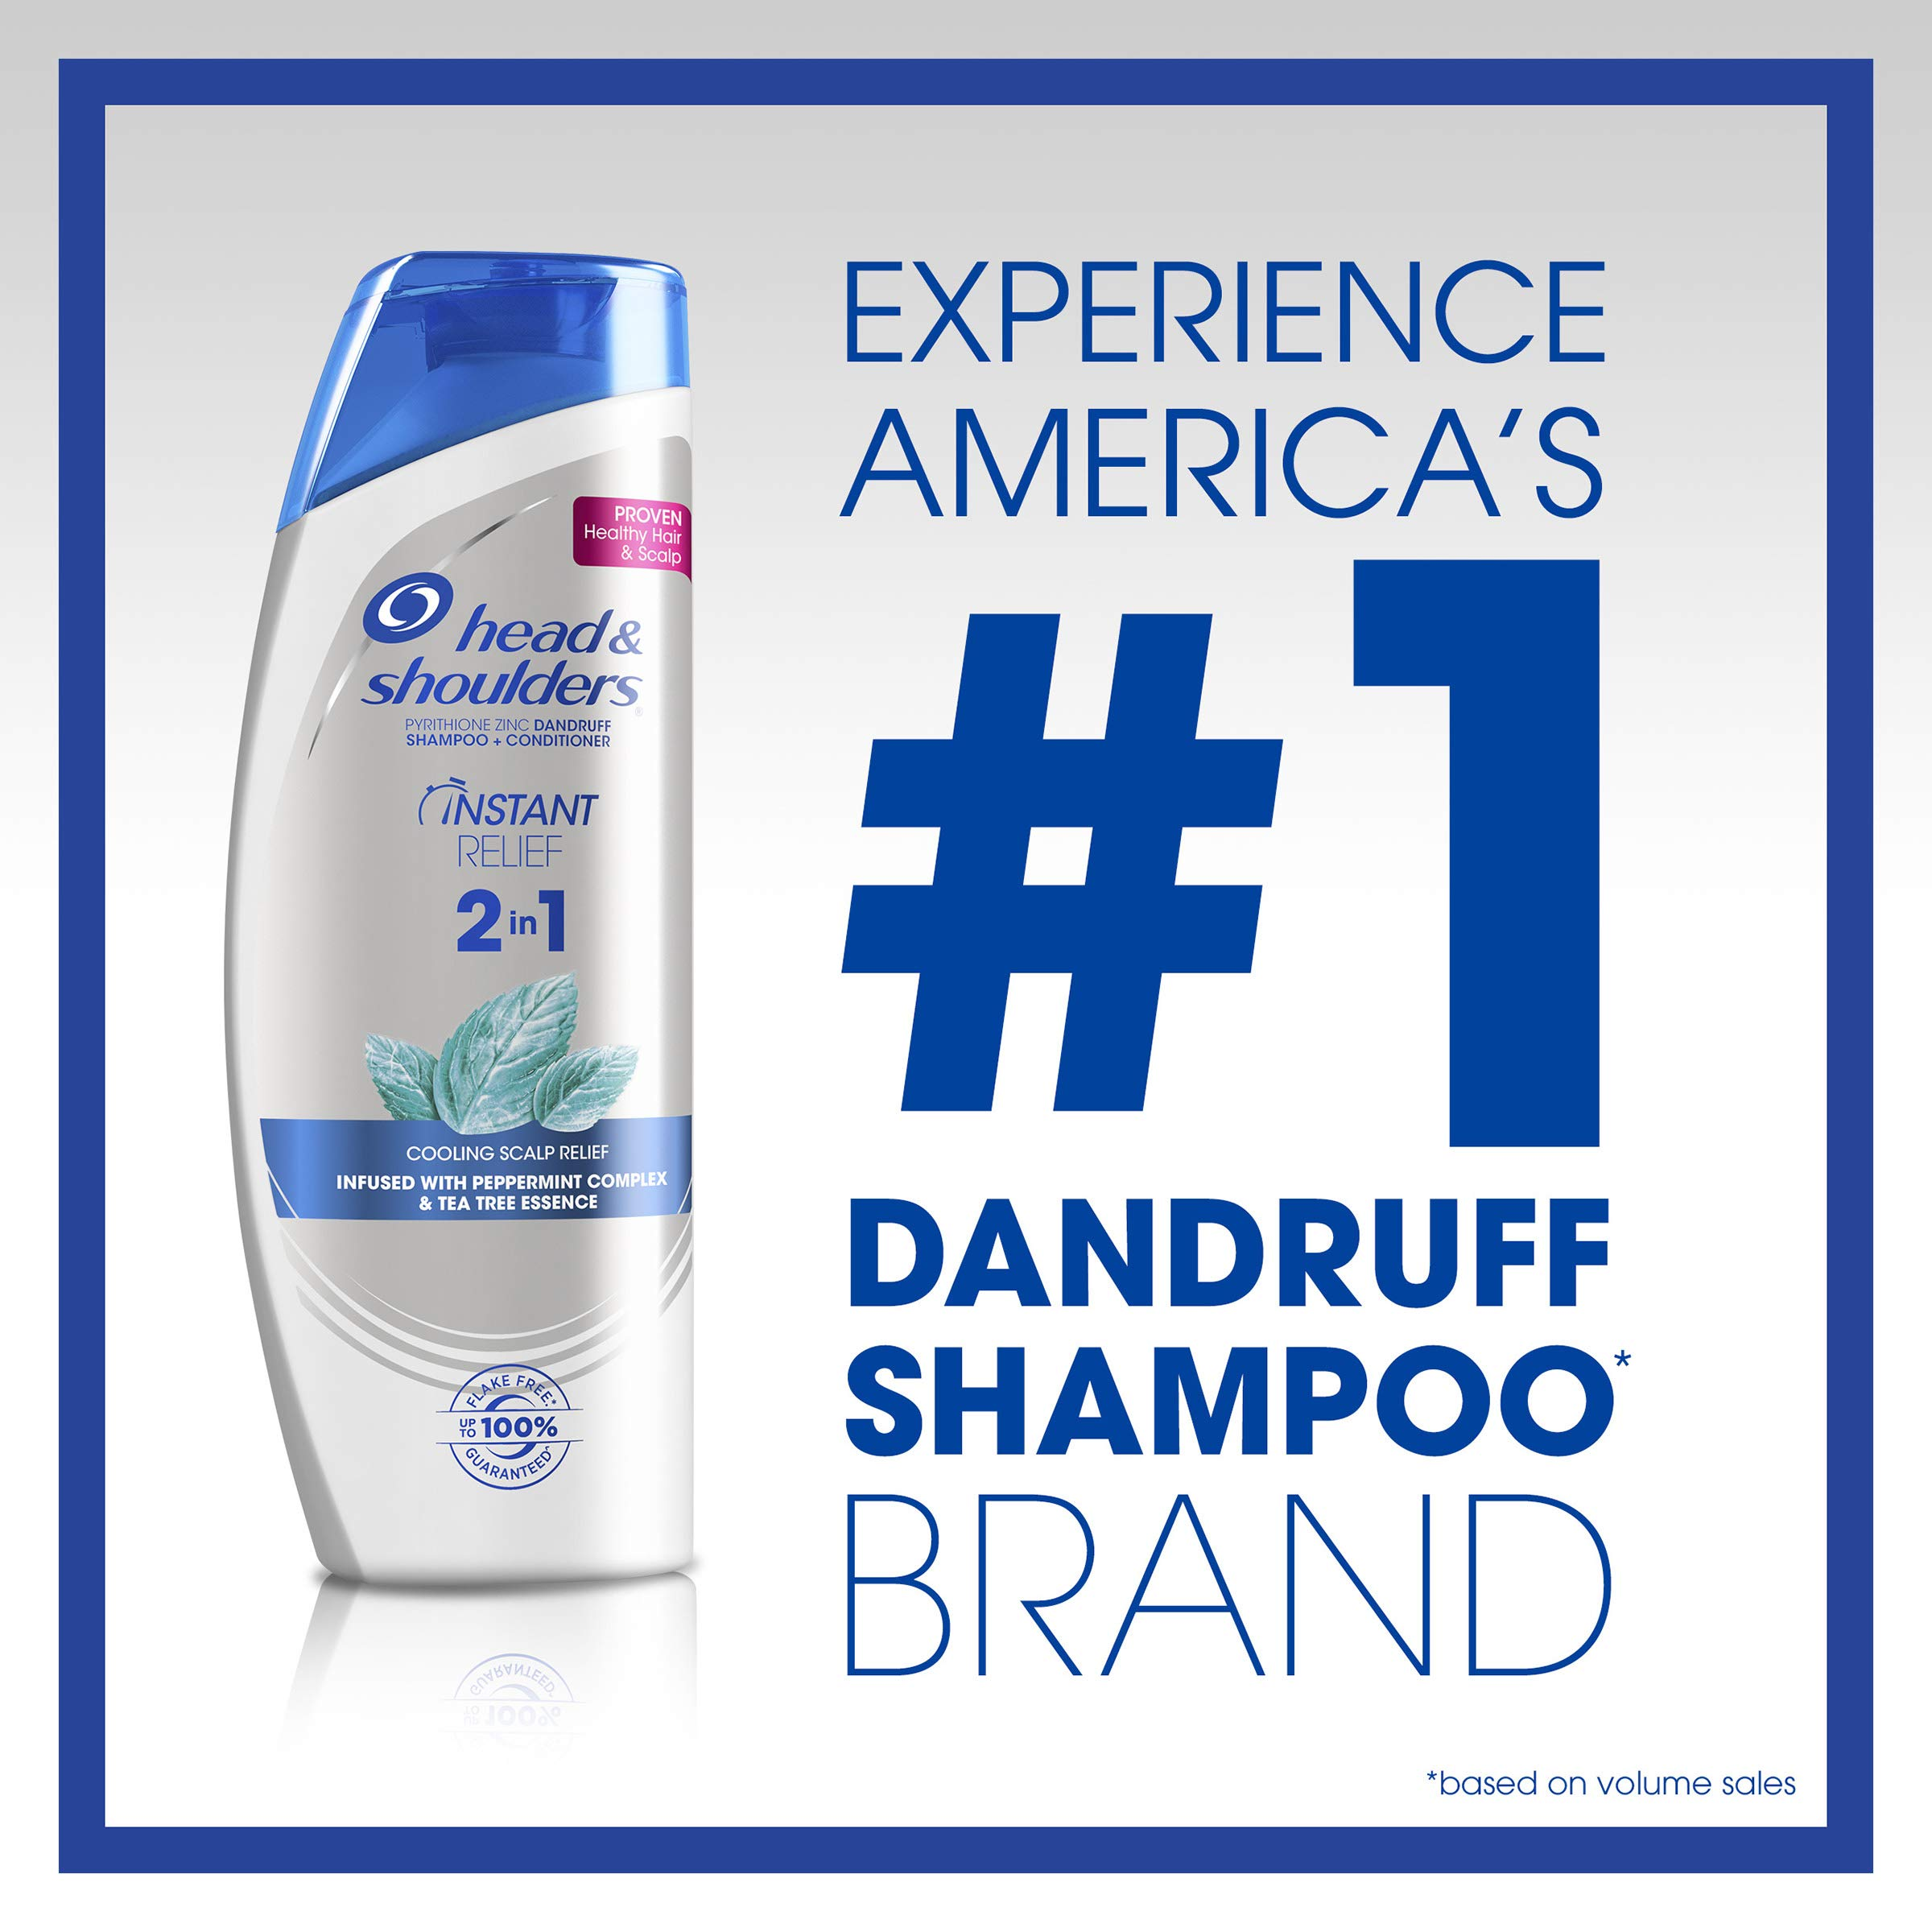 Head and Shoulders Instant Relief Anti-Dandruff 2 in 1 Shampoo & Conditioner, 22.5 Fl Oz (Packaging May Vary) by Head & Shoulders (Image #3)